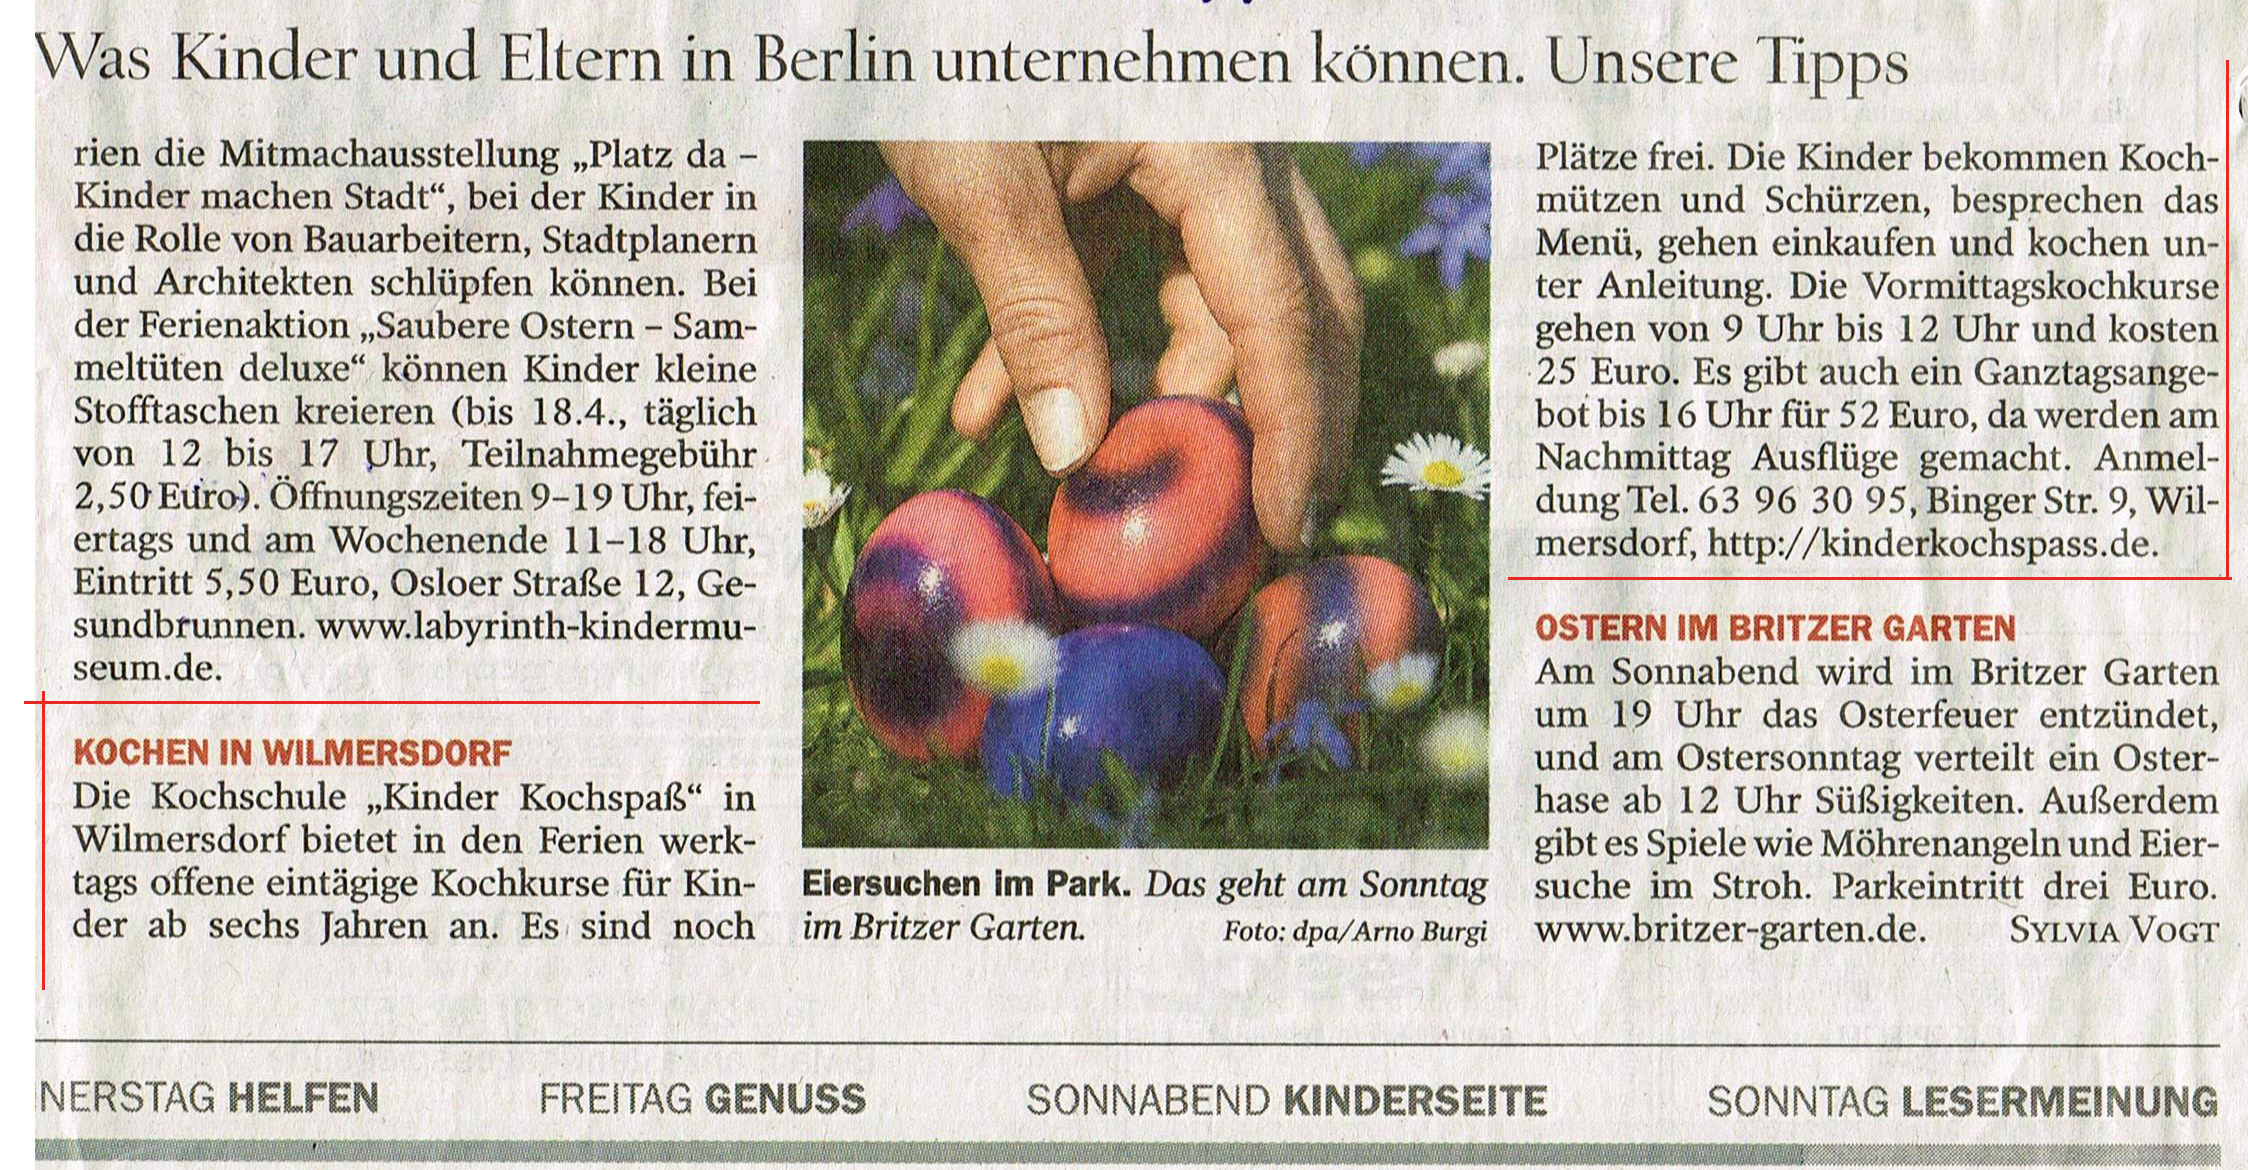 Tagesspiegel Kinder KOCHSPASS